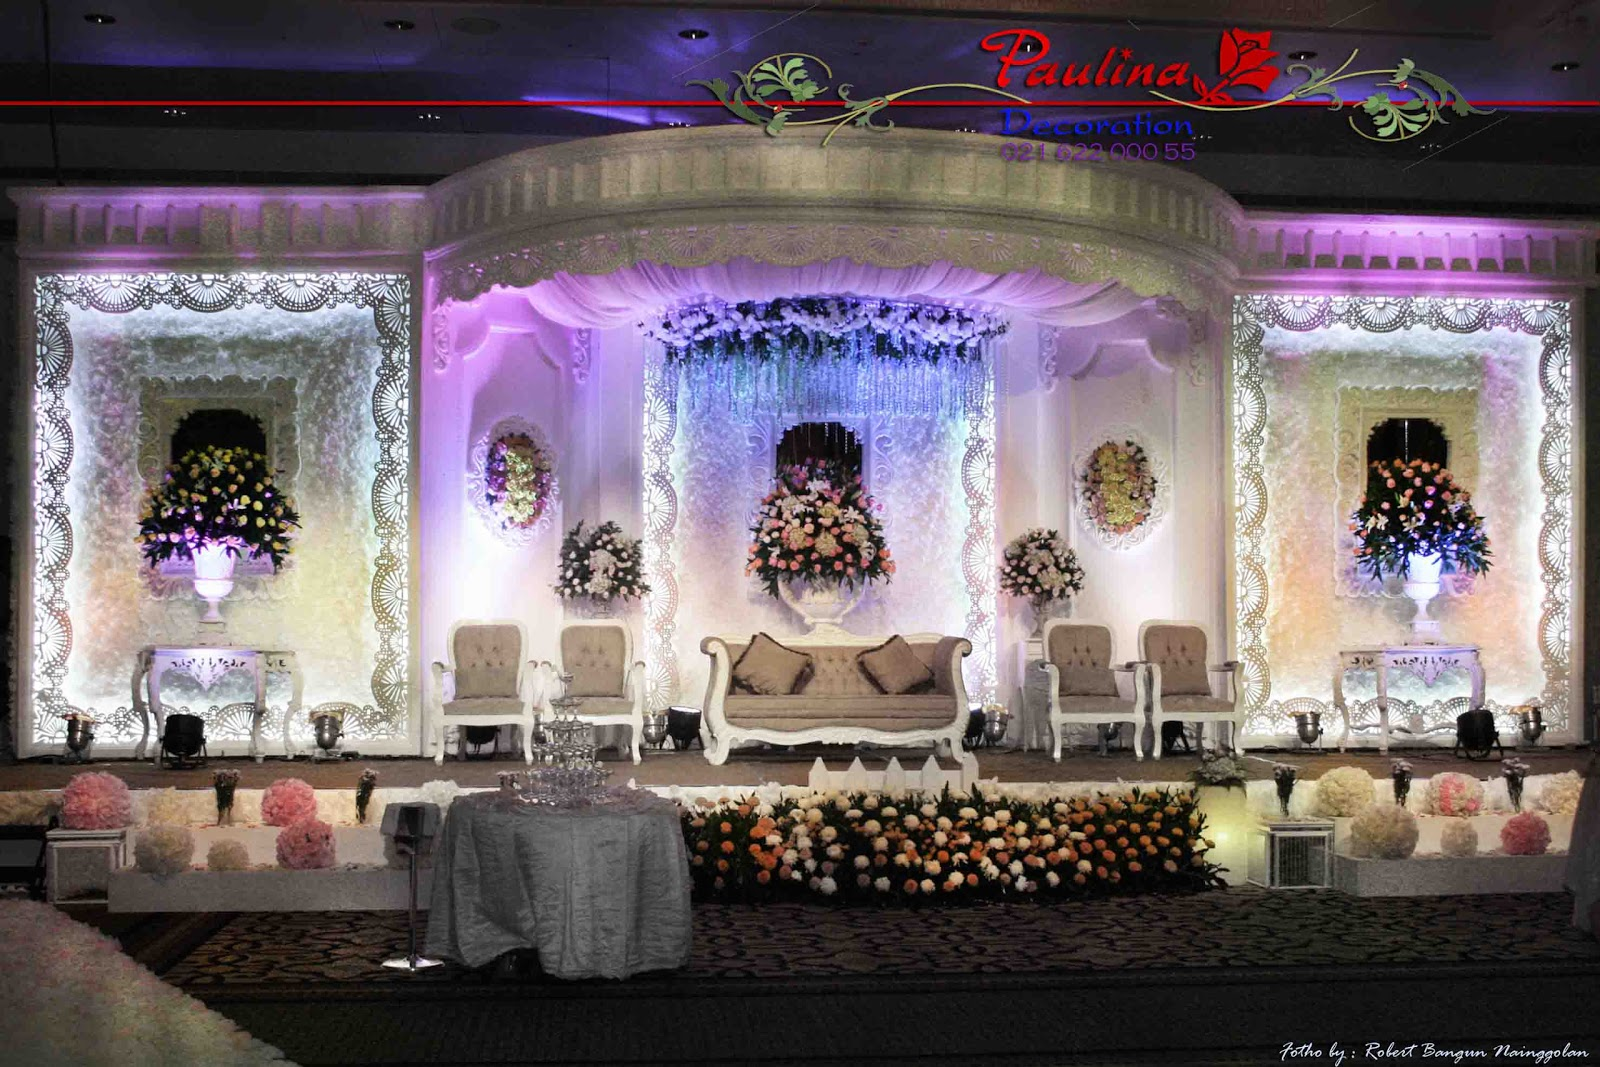 Dekorasi wedding paulina 2012 since our beginning in 1990 paulina has become one of the most recognized decoration florist anf gift of exceptional wedding furnishings lighting and junglespirit Gallery